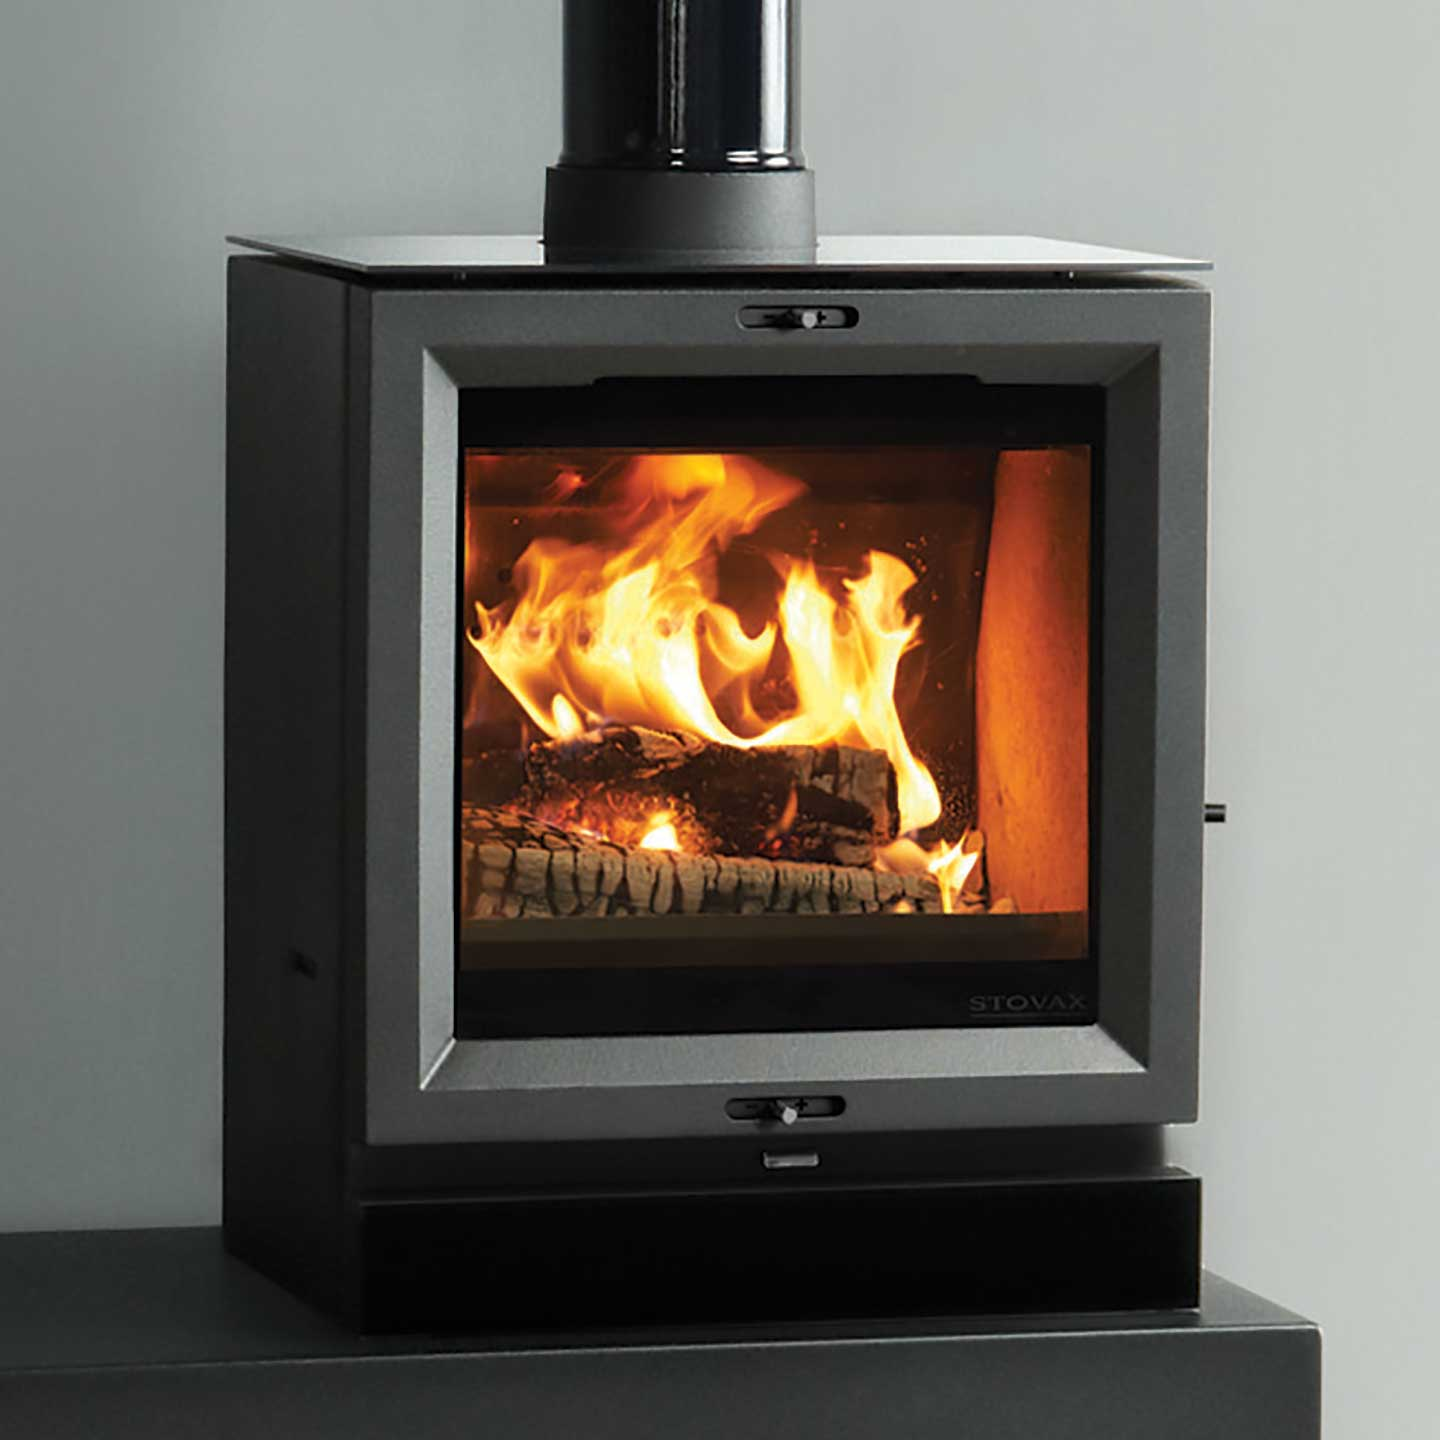 stovax view 5 multi fuel stove the stove site approved. Black Bedroom Furniture Sets. Home Design Ideas